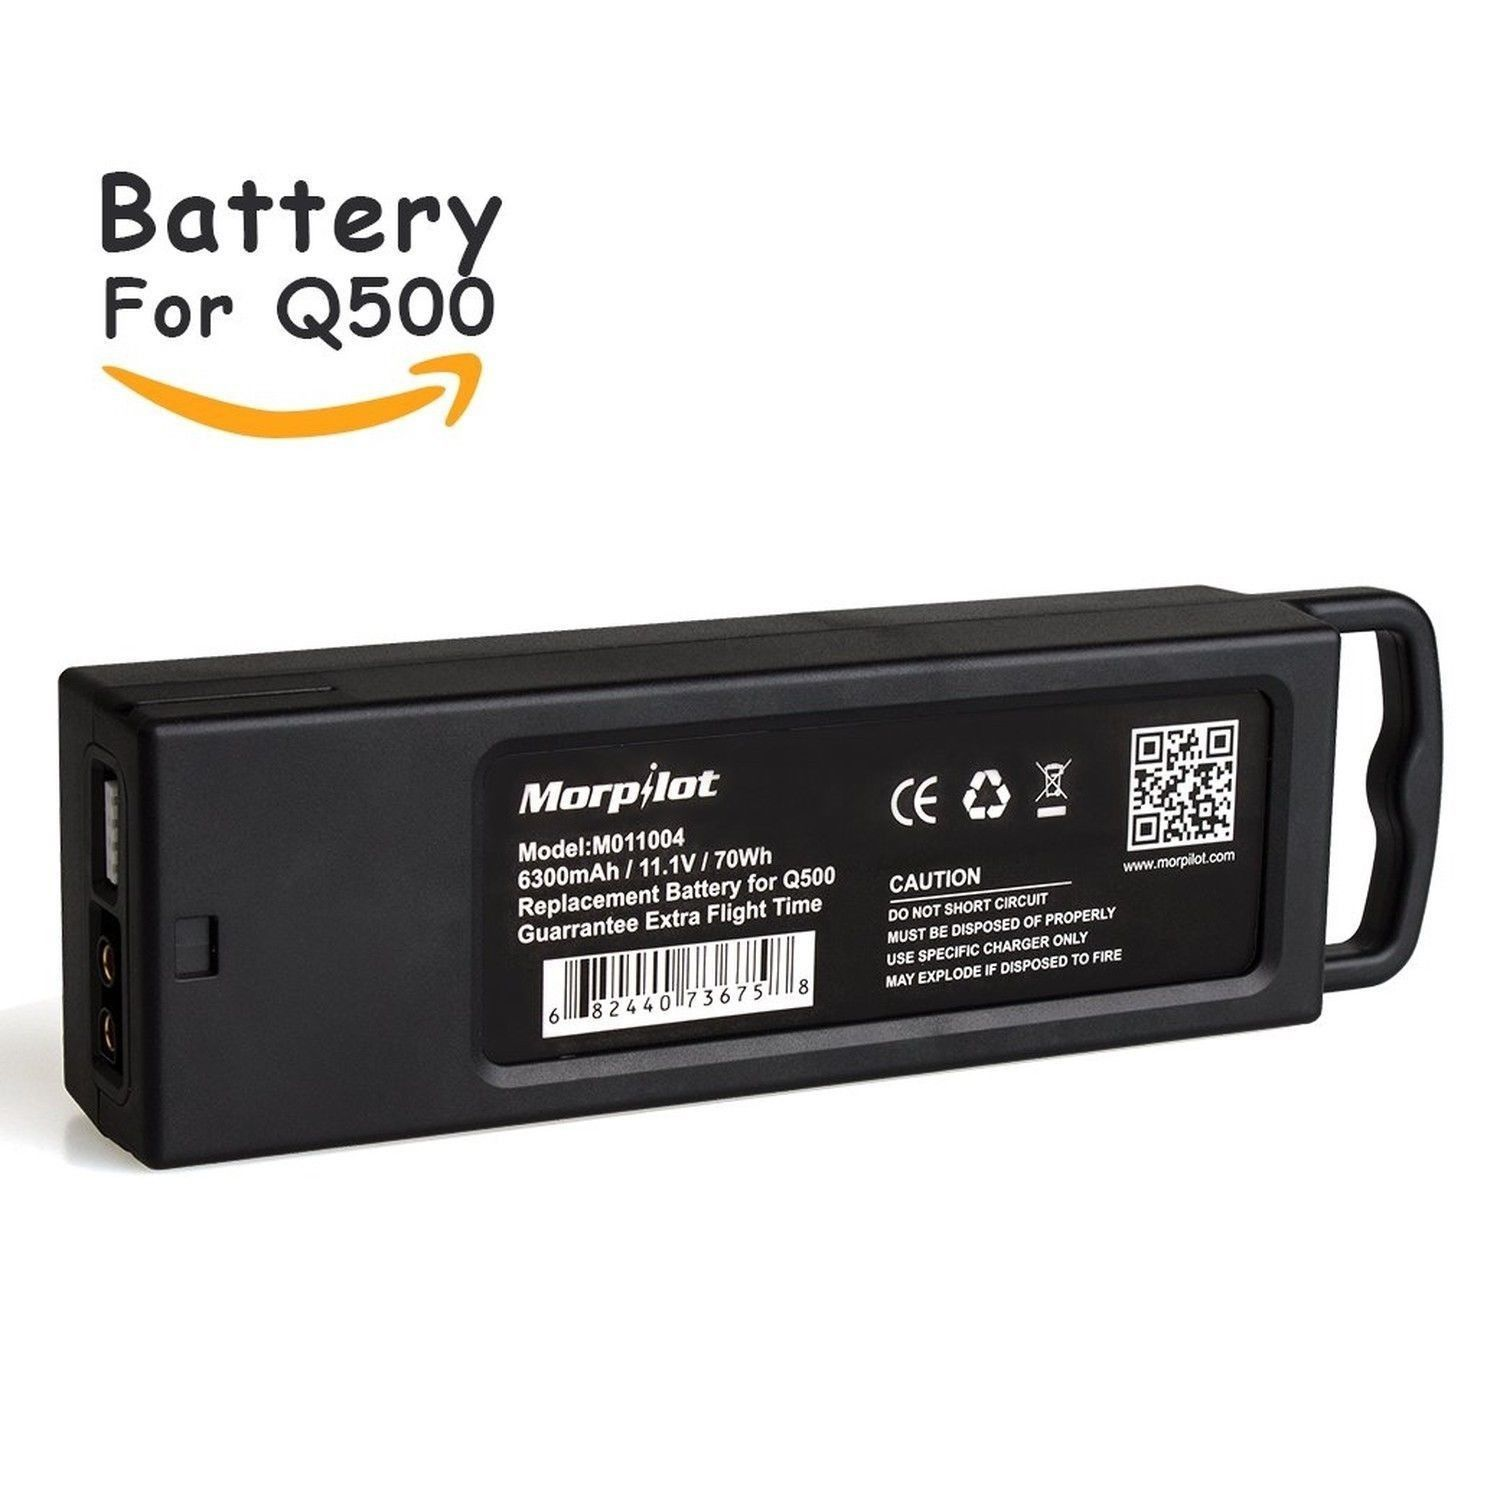 [CE Approved] Morpilot 3S 6300mAh 11.1V LiPO Battery with